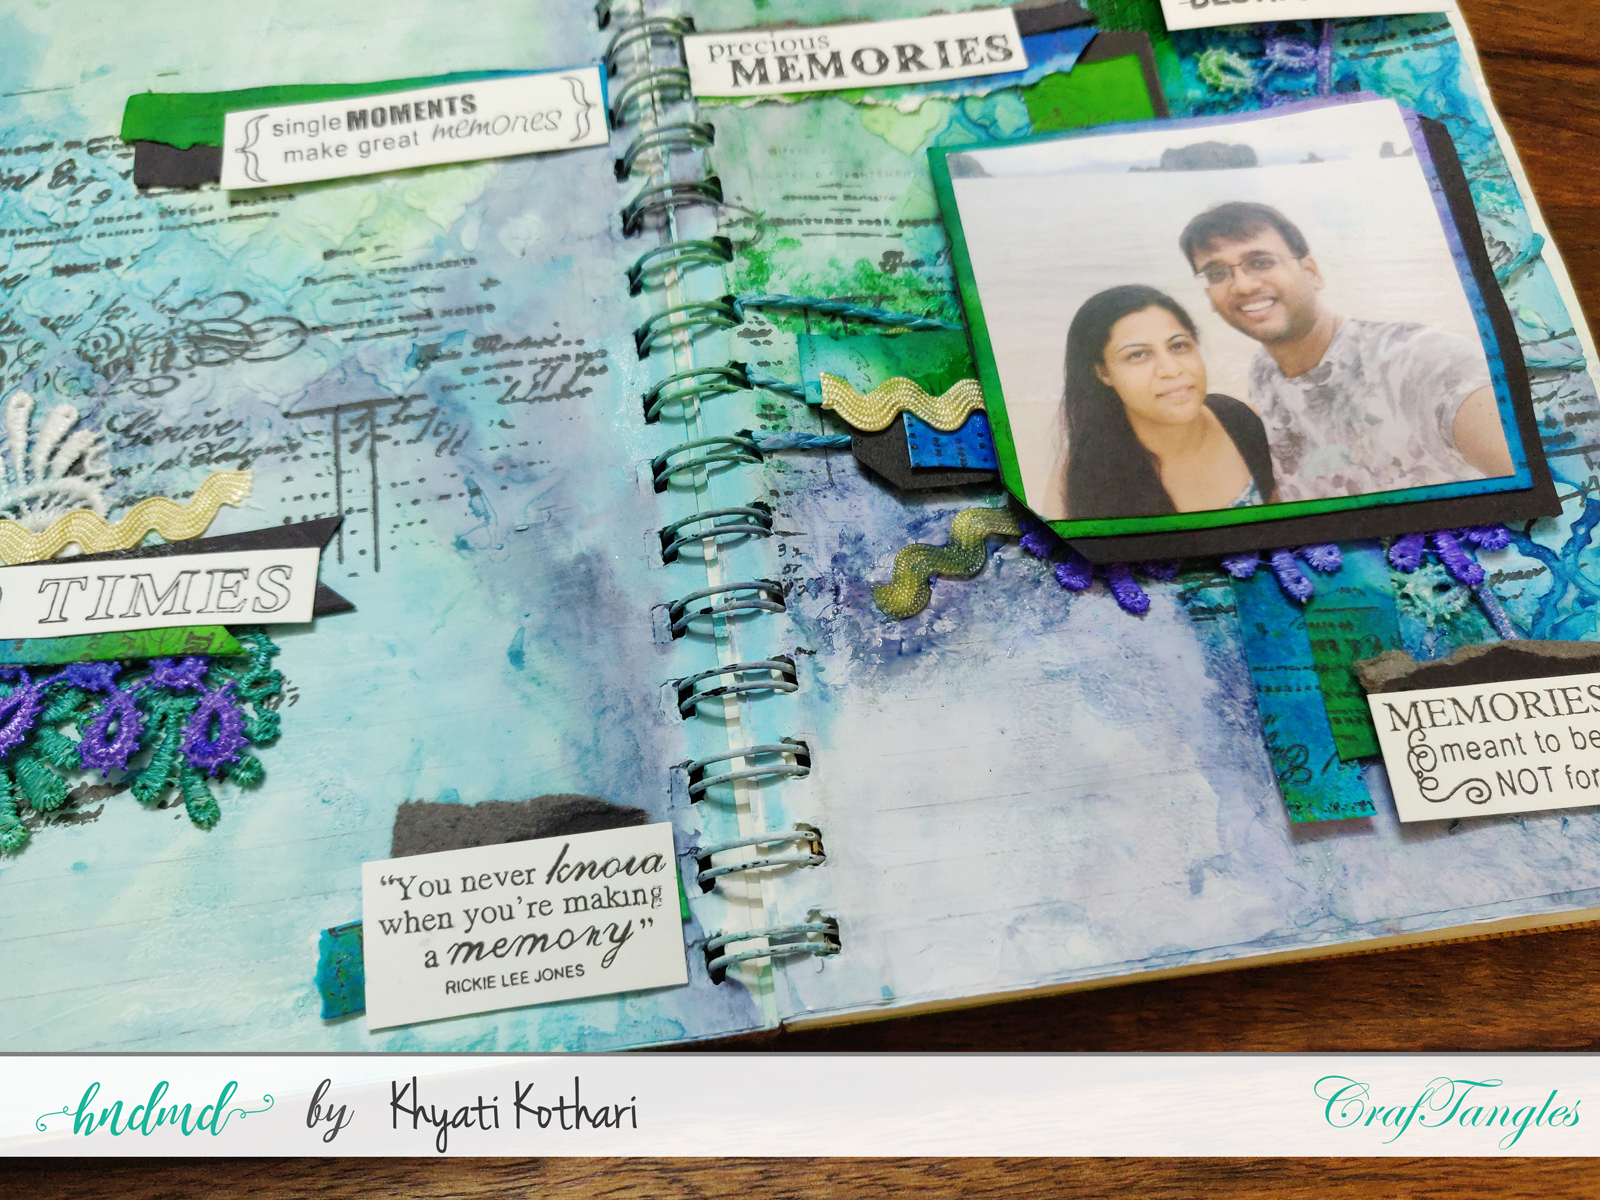 First attempt at Art Journal page using CrafTangles products 5